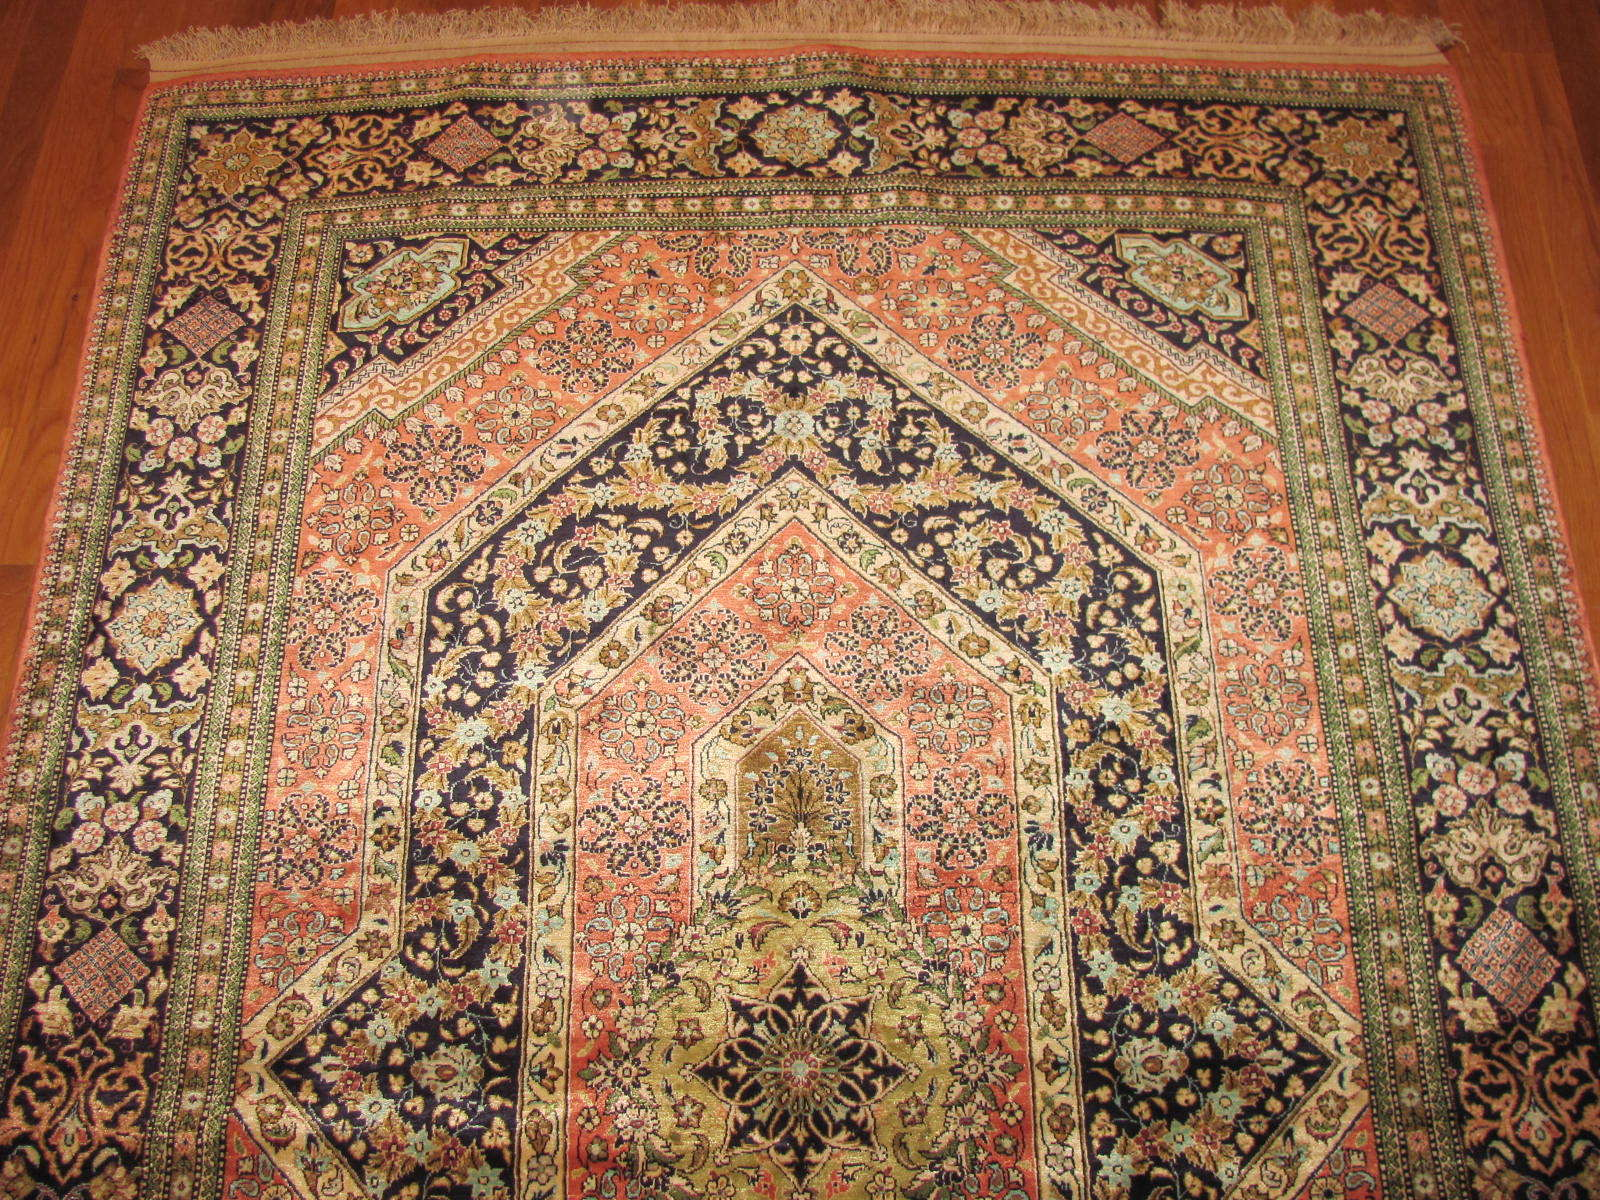 24550 persian silk quom rug 4,6x7,2 -1